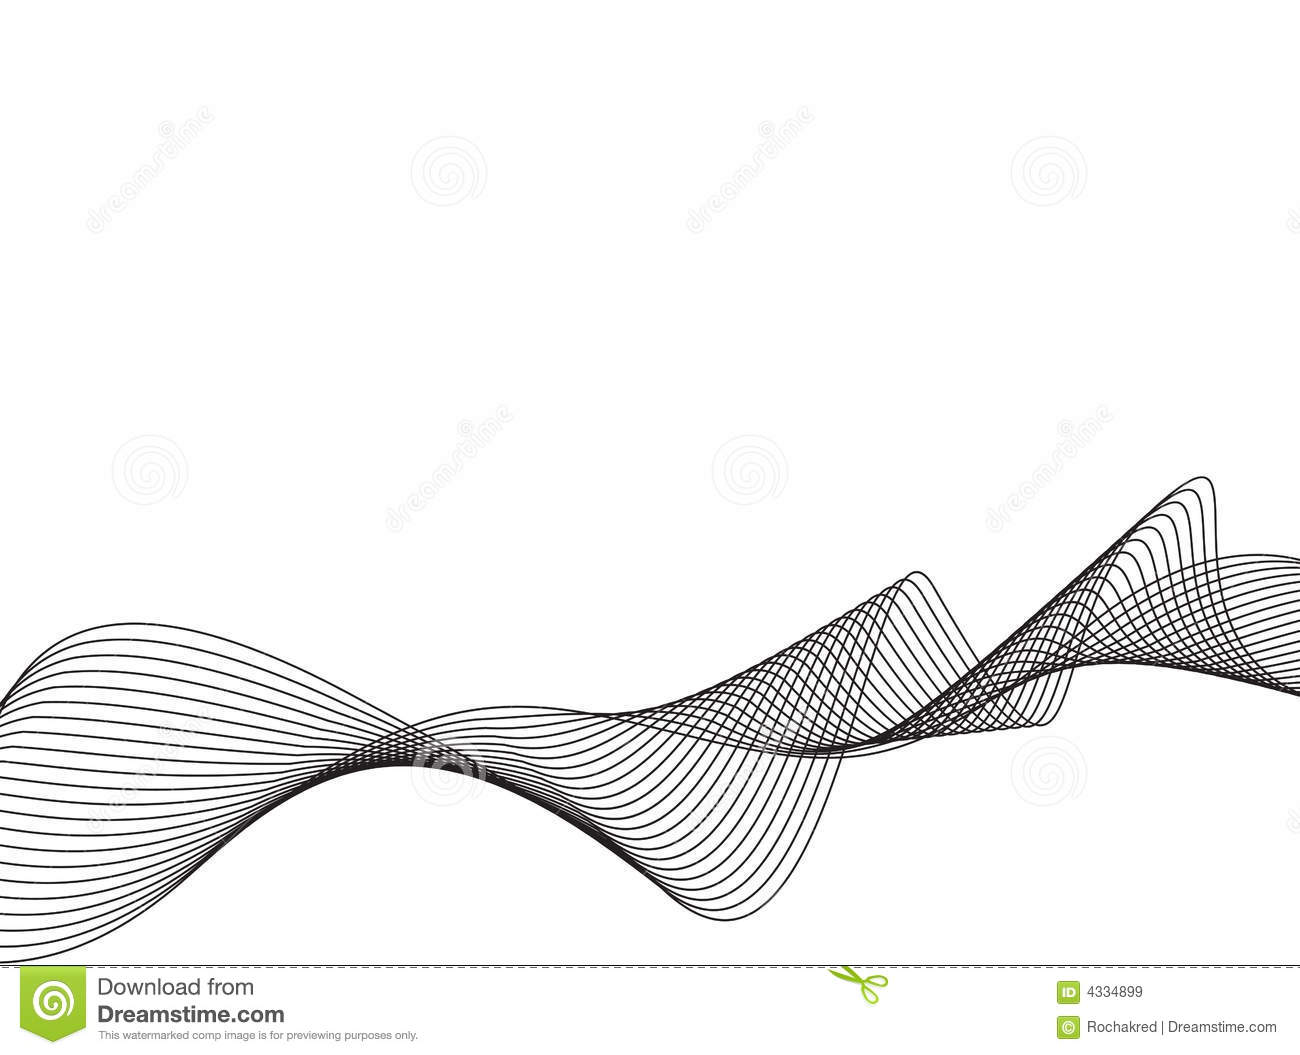 Line Drawing Vector Graphics : Vector line art waves stock illustration of retro